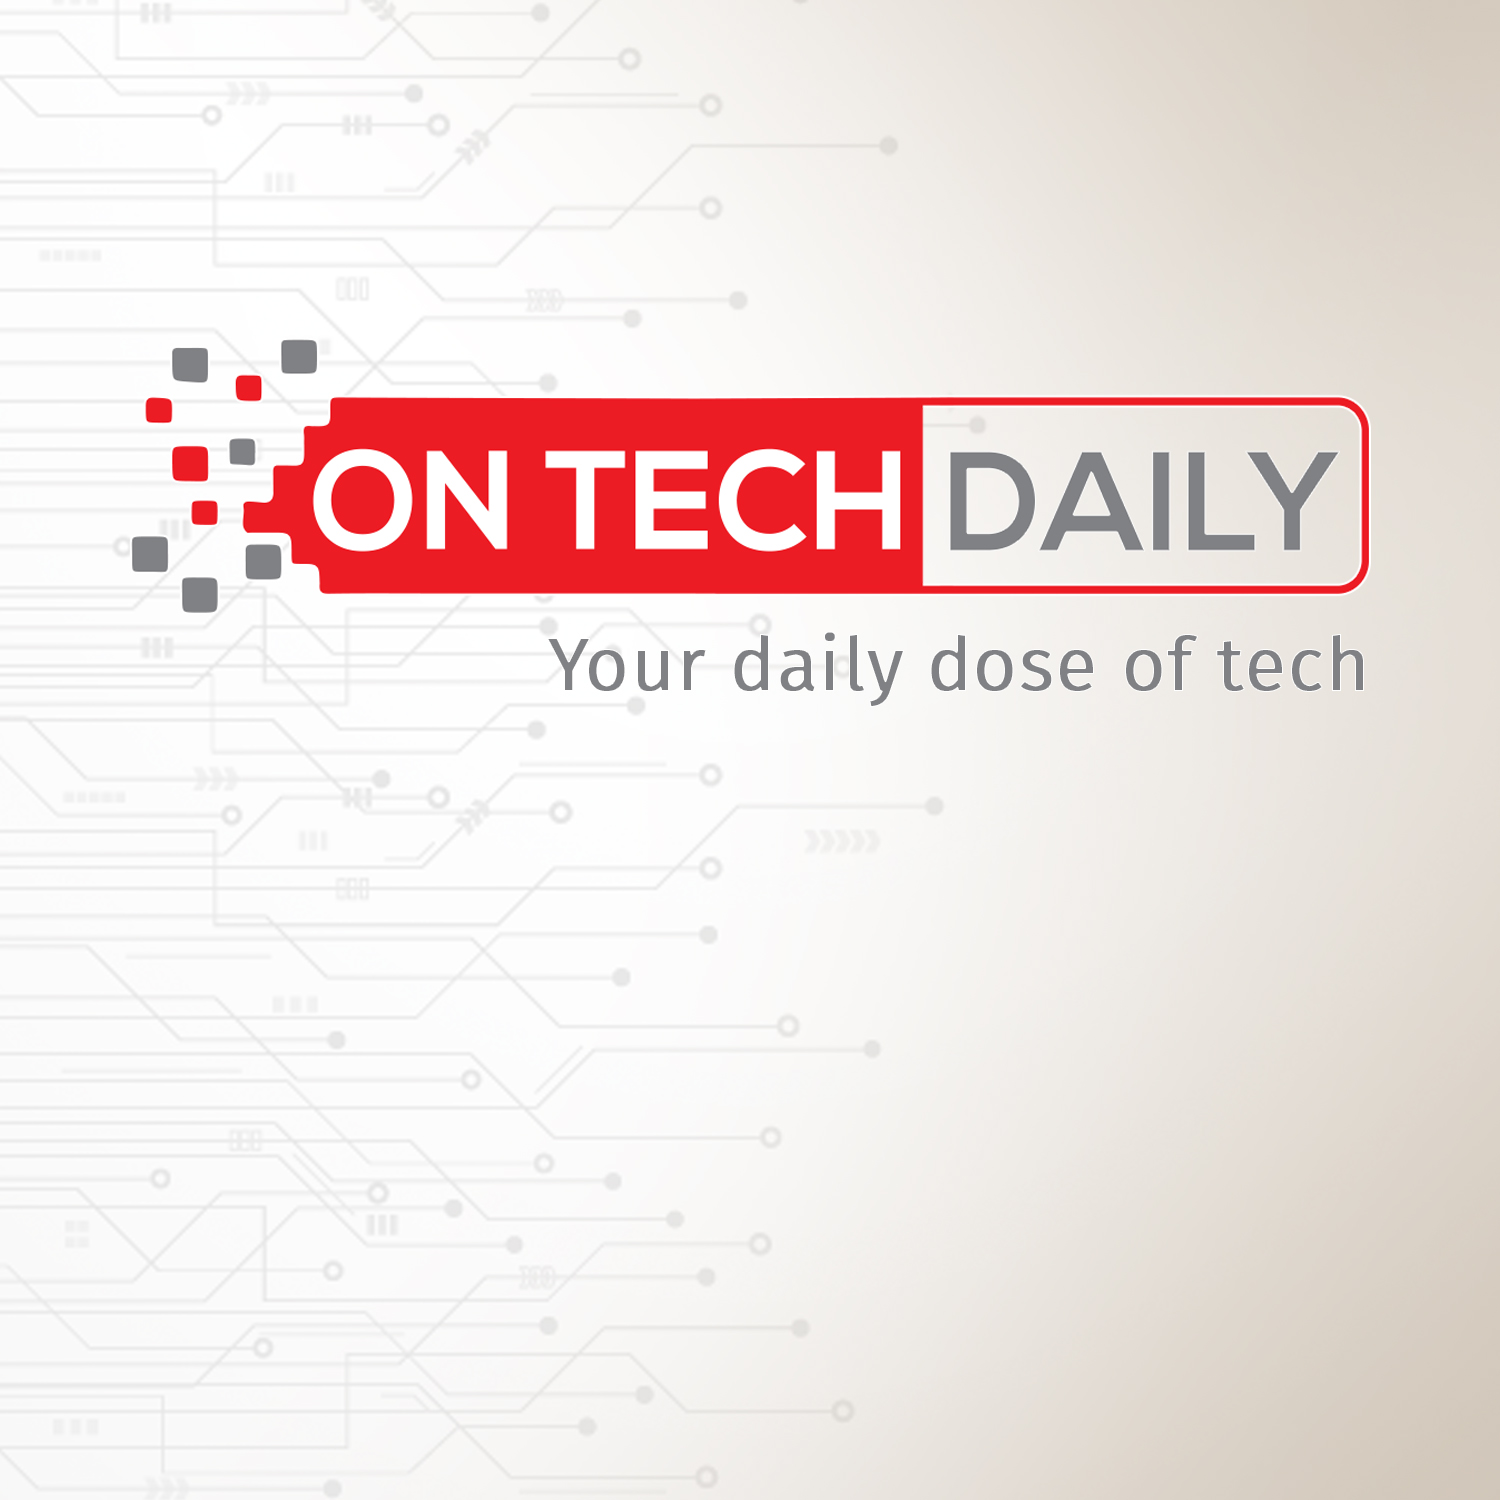 On Tech Daily - Daily dose of Tech show art